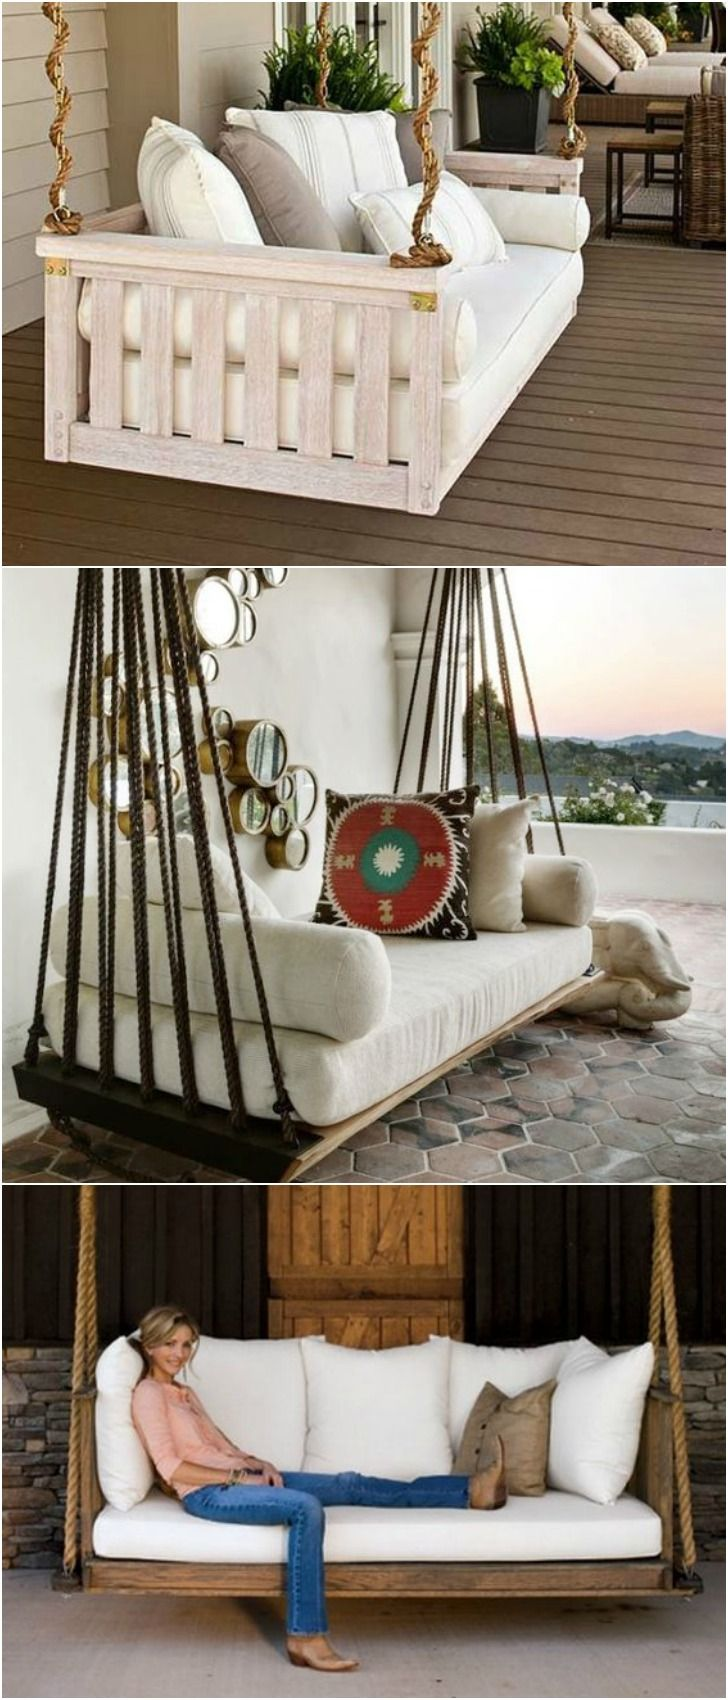 nice 7 DIY Outdoor Swings That'll Make Warm Nights Even Better. #6 Is Just Stunning  #best #DIY #Outdoor #Pallet #Recycled #Swing #top #Wood  1 - Cosy Wood Swing  source Like the mix of old and new, tin roof, wouldn't do the swing tho, just giant cushy bench.  2 - Porch Swings with Ro...